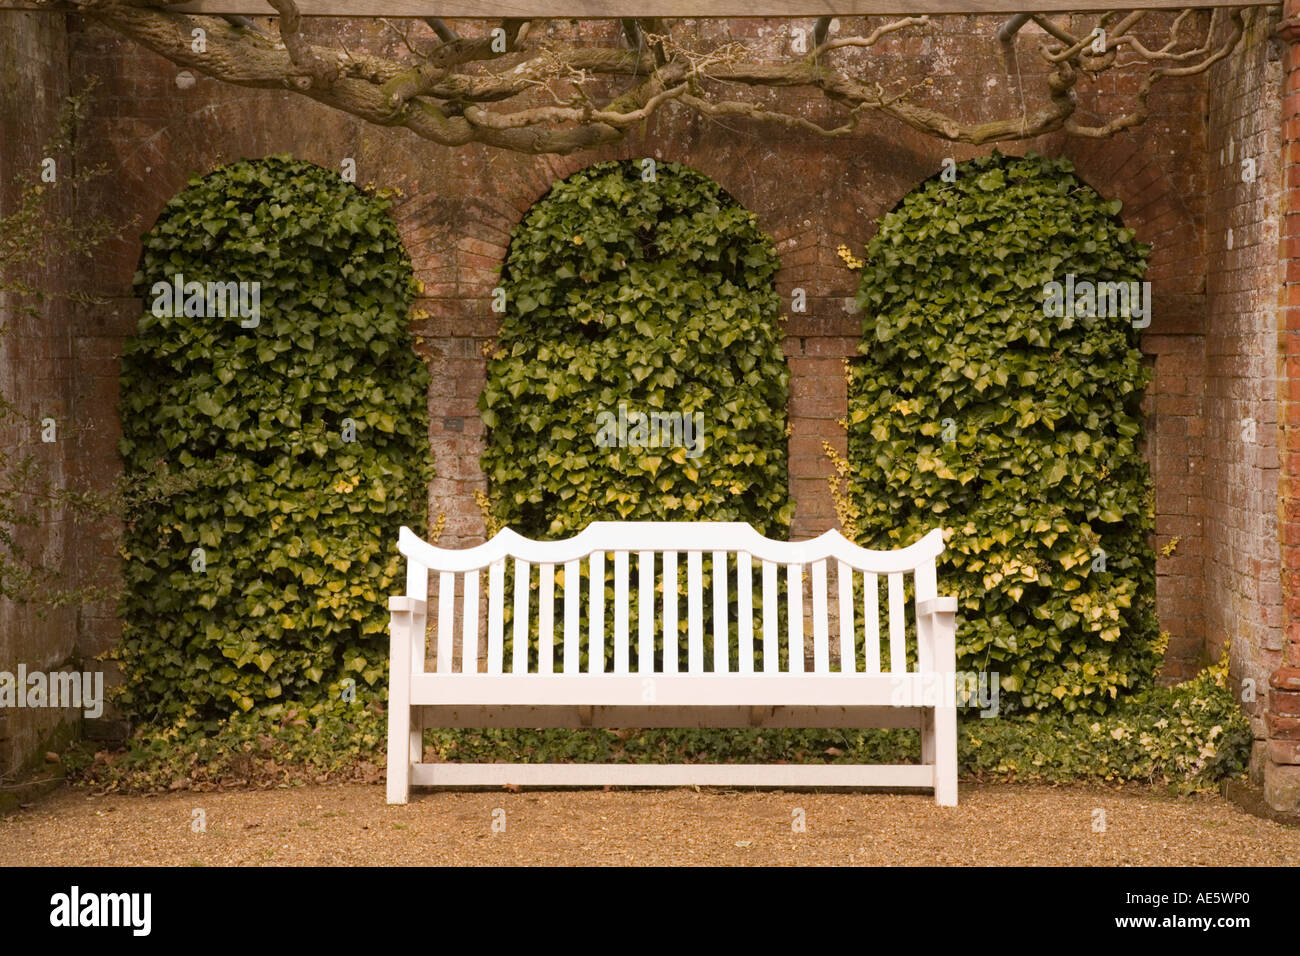 Surprising Wooden Bench And Alcove In Formal Garden Stock Photo Forskolin Free Trial Chair Design Images Forskolin Free Trialorg